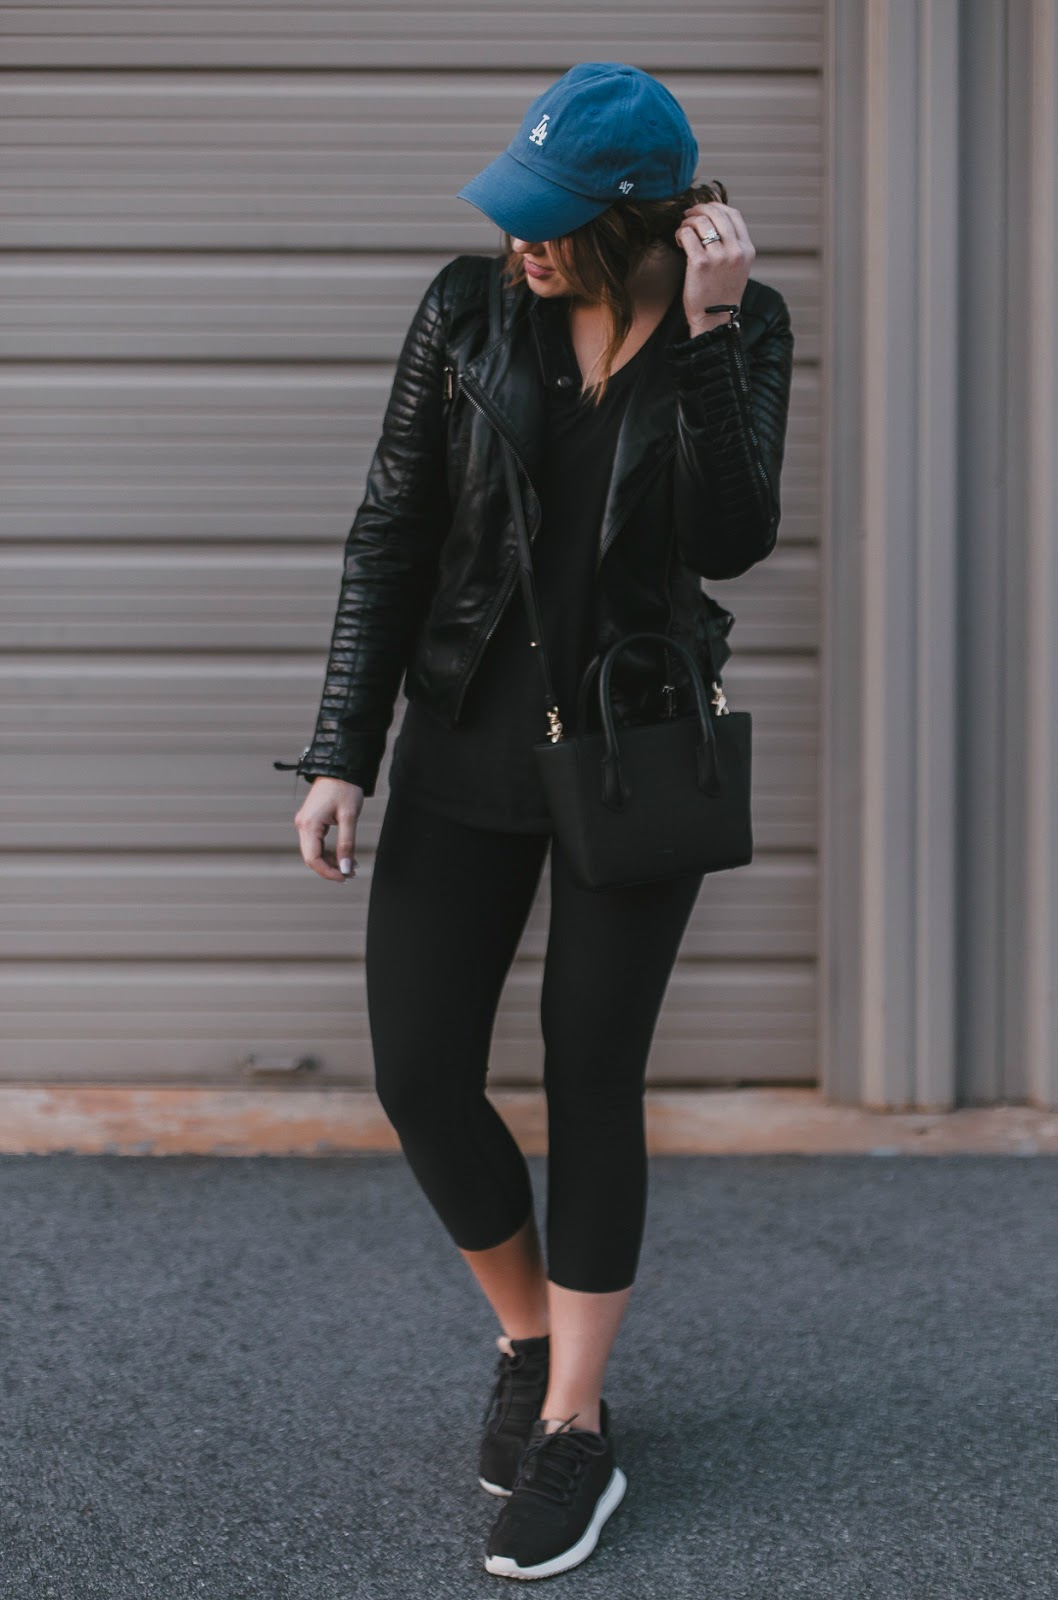 athleisure wear, life and messy hair, xo samantha brooke, samantha brooke, sam brooke photo, nc photographer, greensboro photographer, nc blogger, nike high waisted leggings, adidas tubular shoes